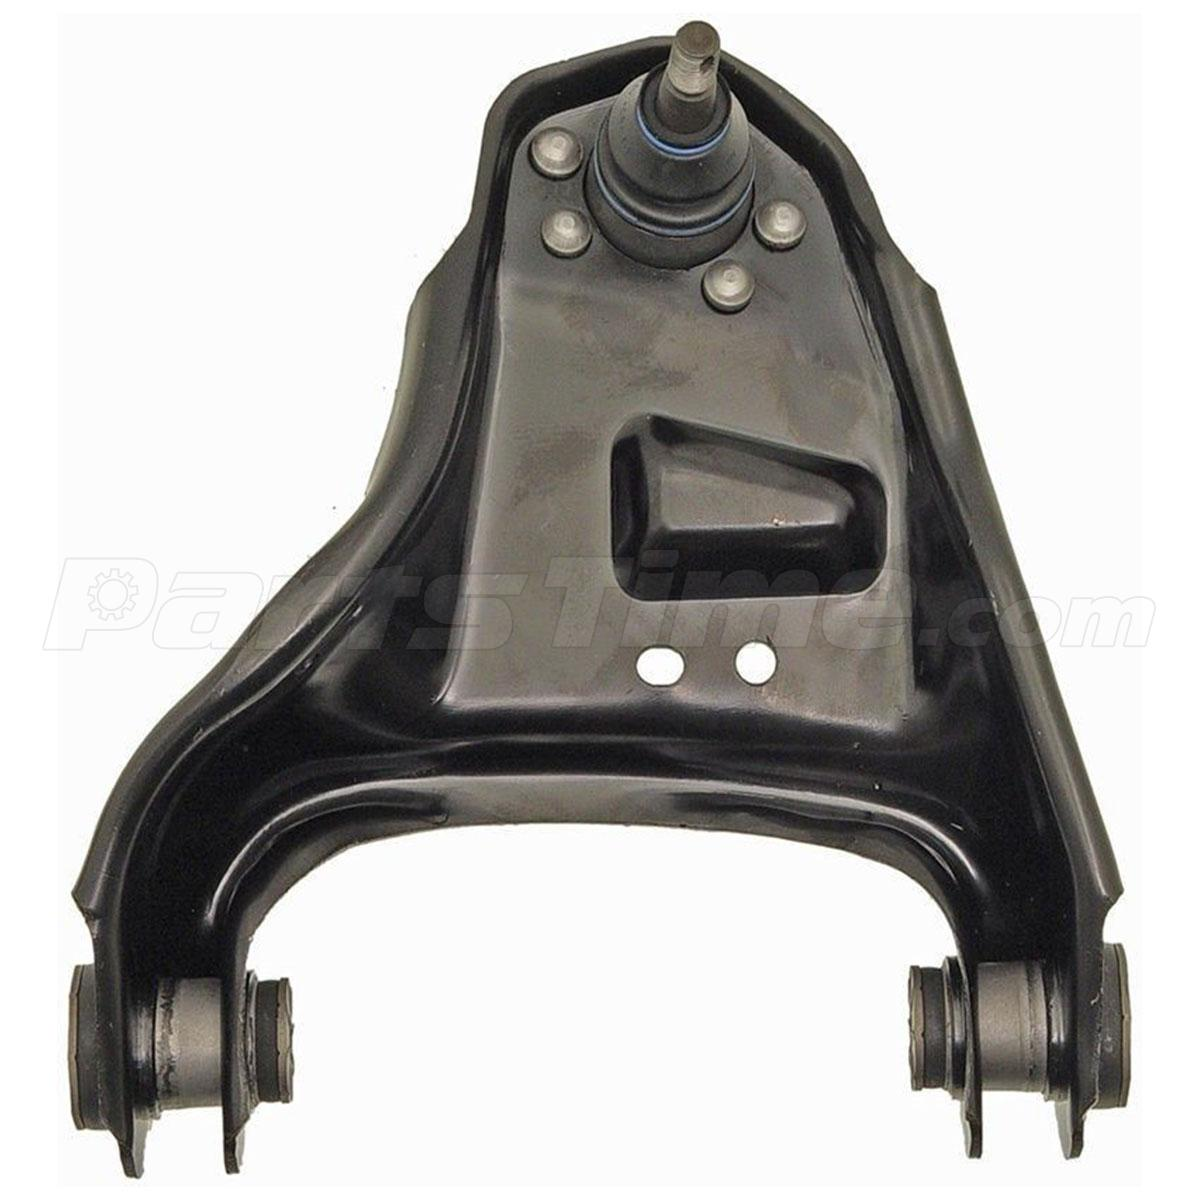 1997 Gmc Sonoma Regular Cab Interior: 6 Suspension Control Arm Ball Joint Sway Bar Link Kit For